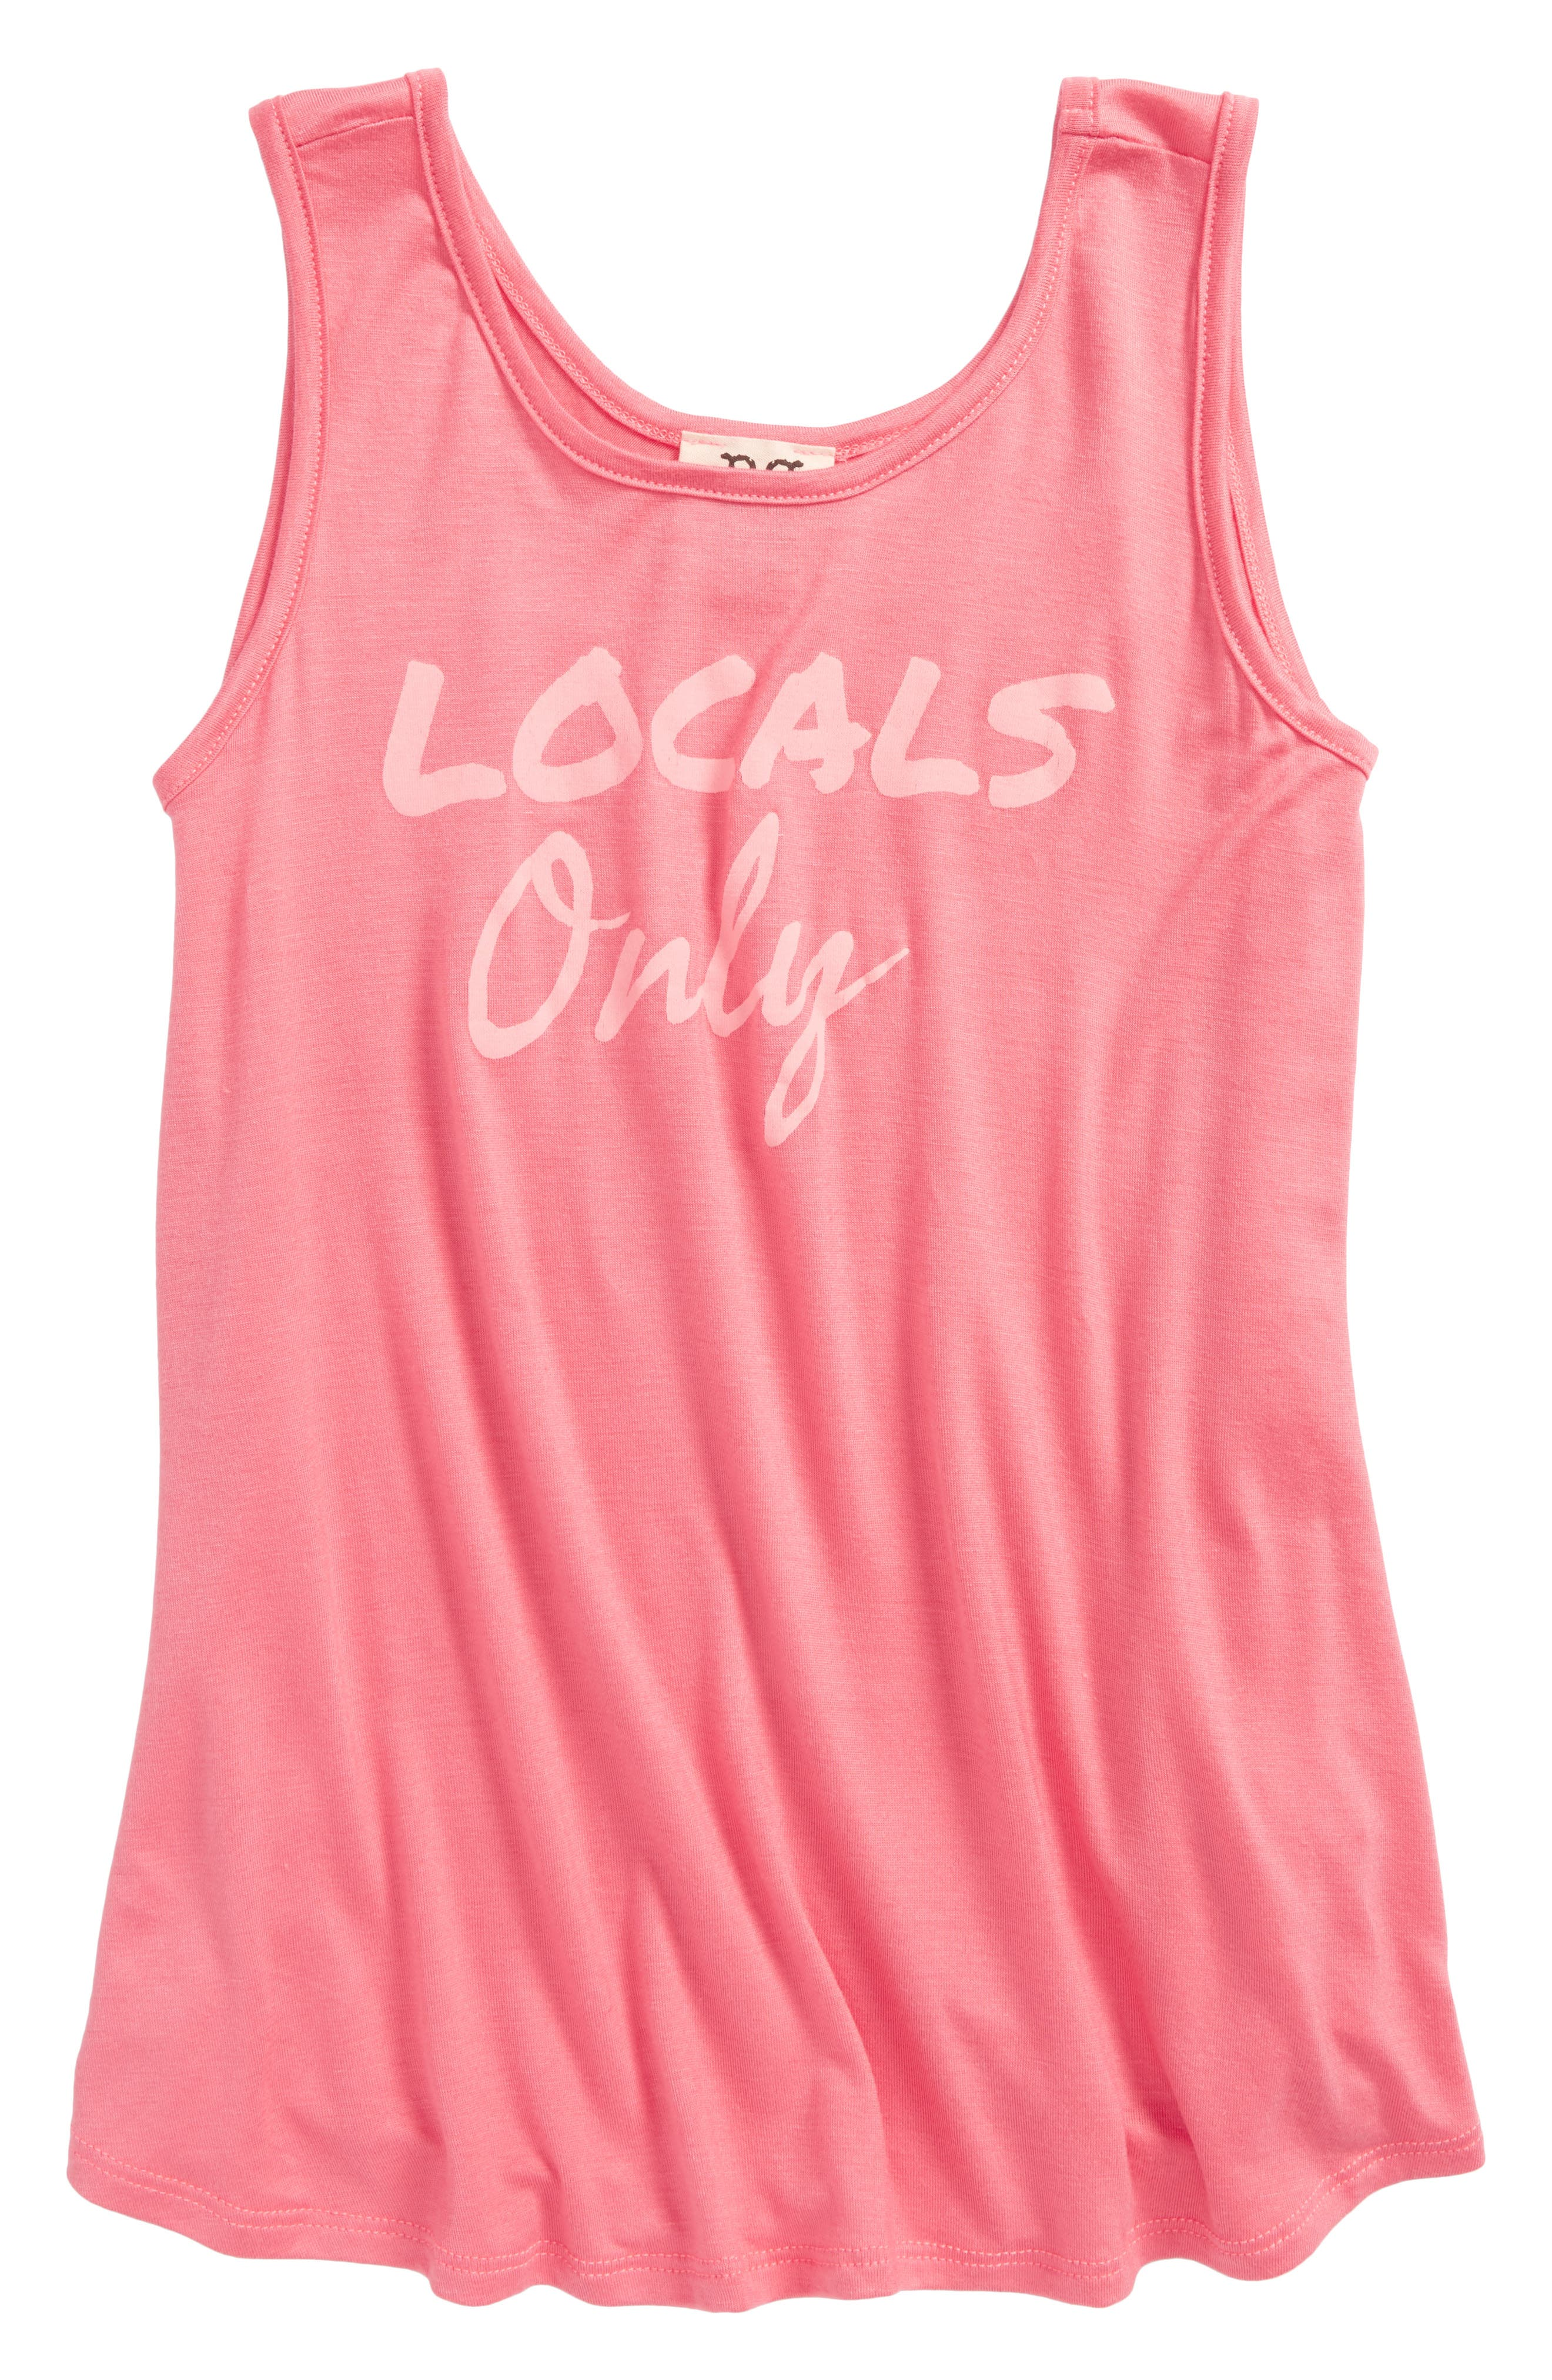 Locals Only Swing Tank,                         Main,                         color,